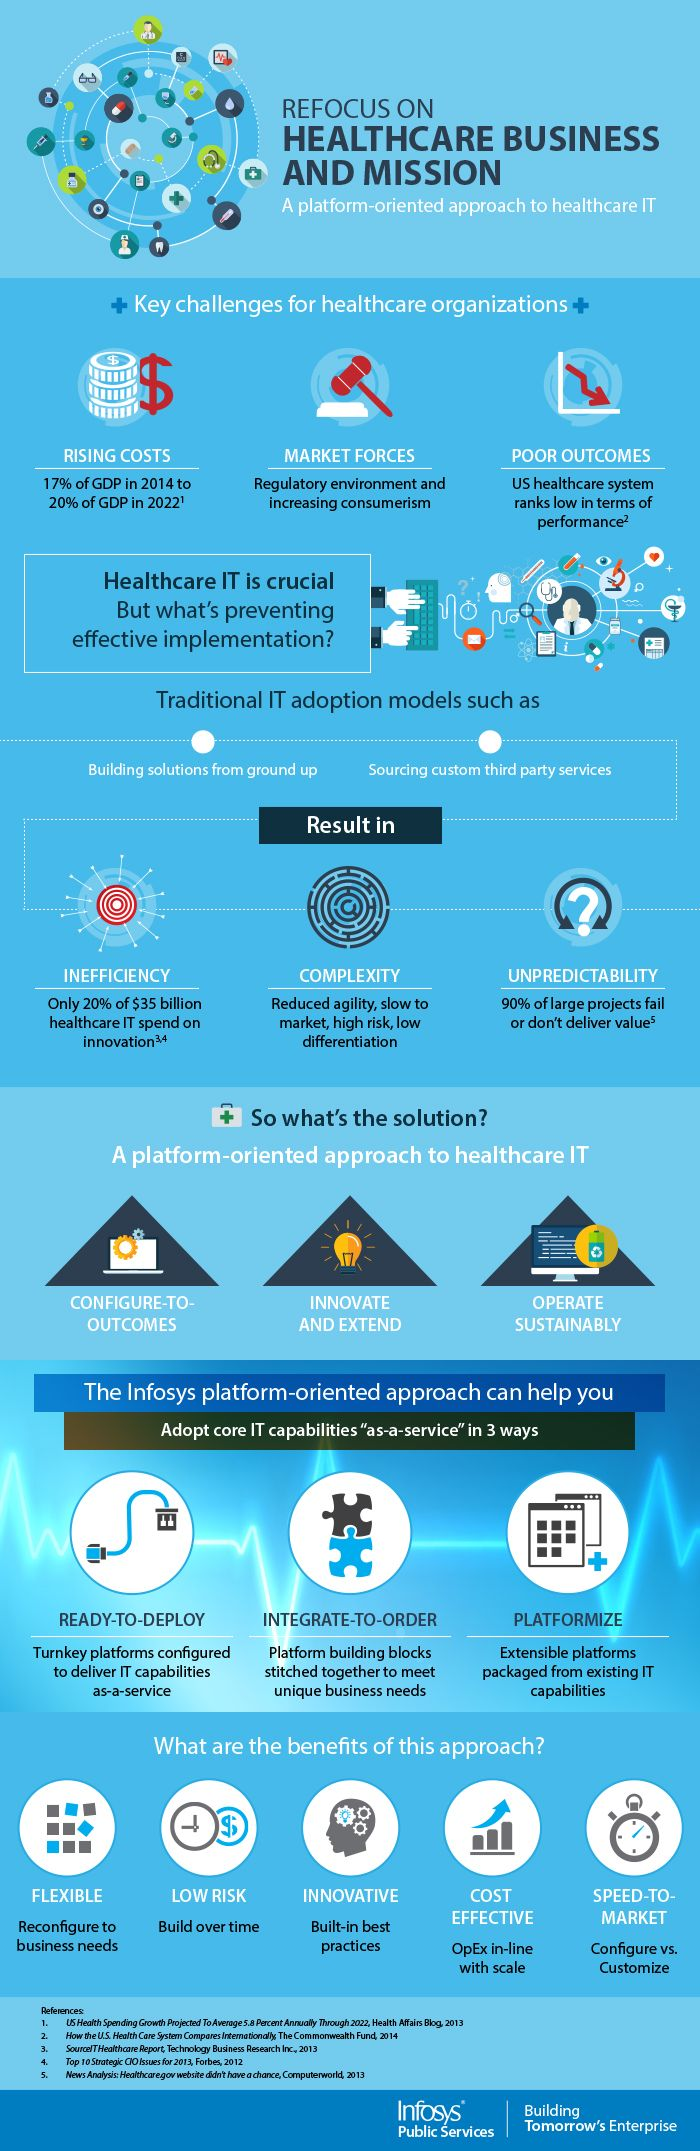 A Platform-Oriented Approach to Healthcare IT